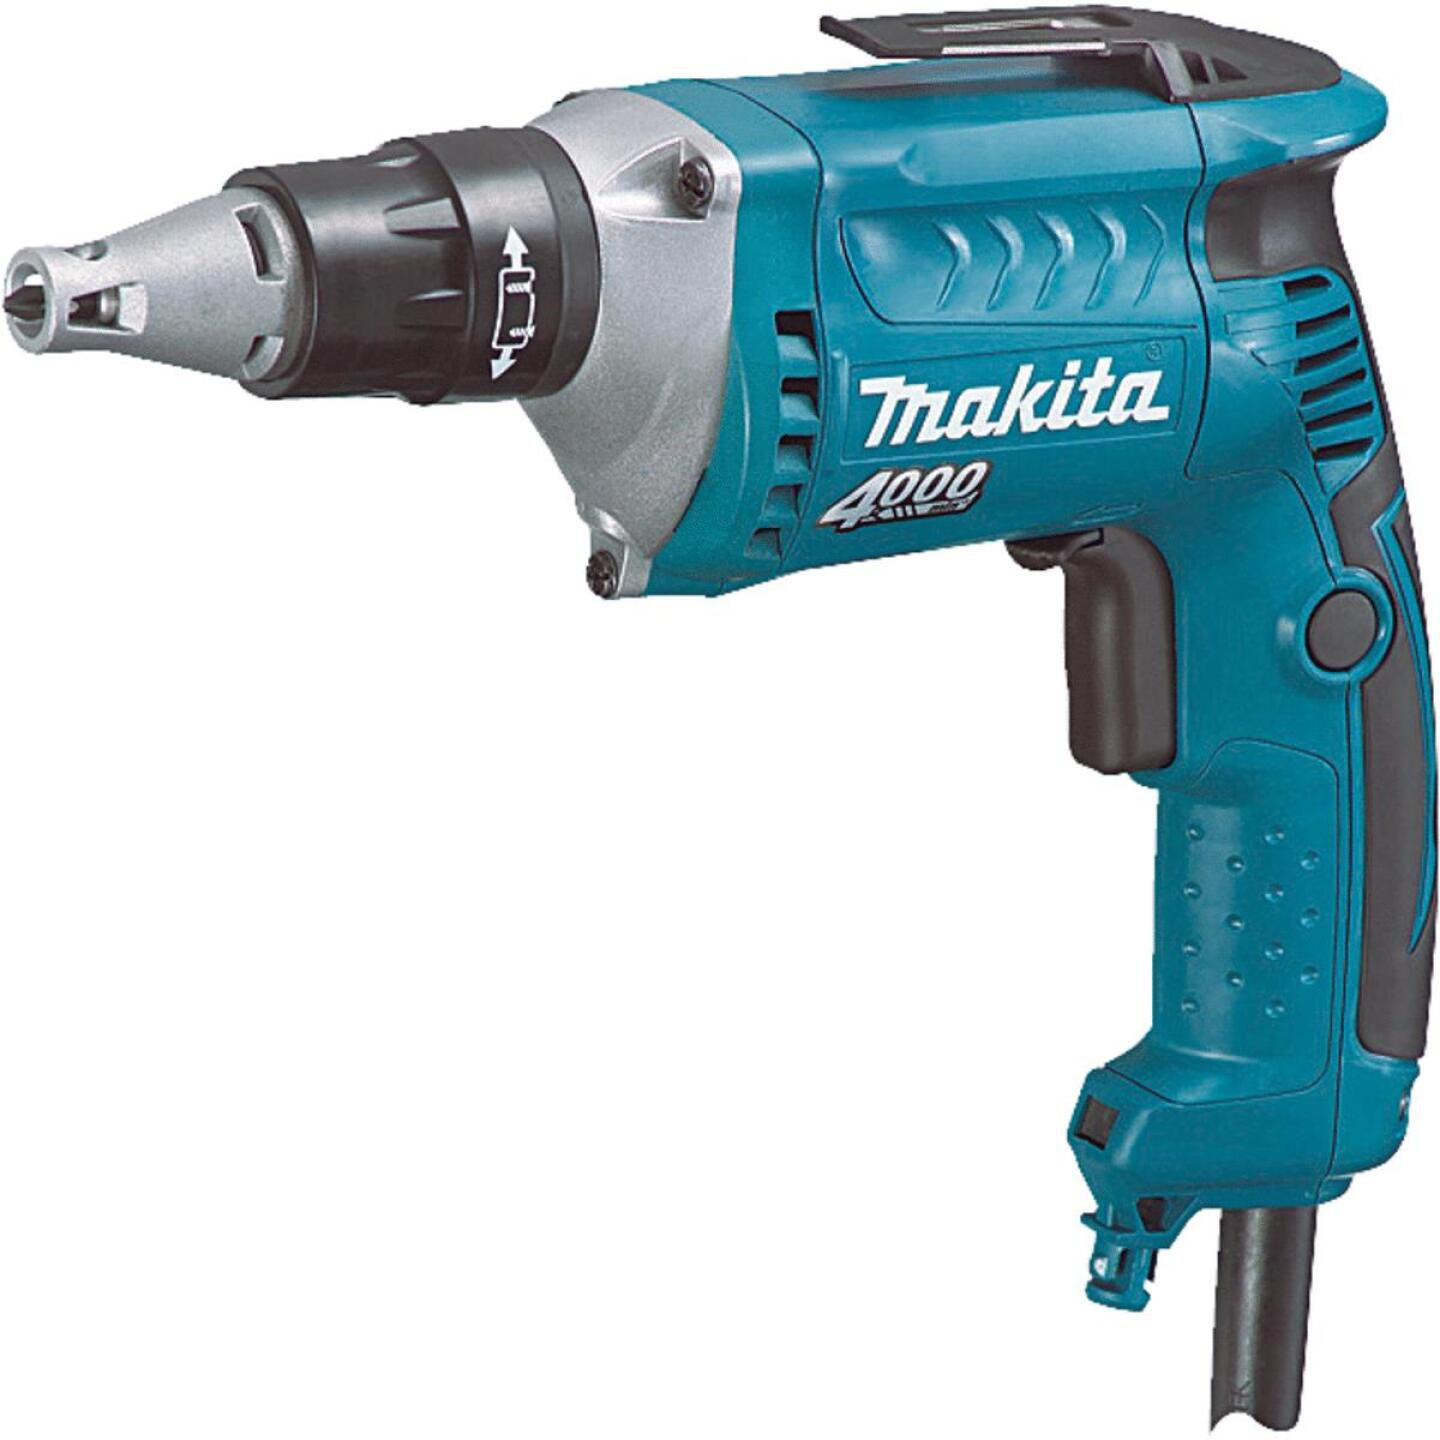 Makita 6A/4000 rpm Electric Screwgun Image 1